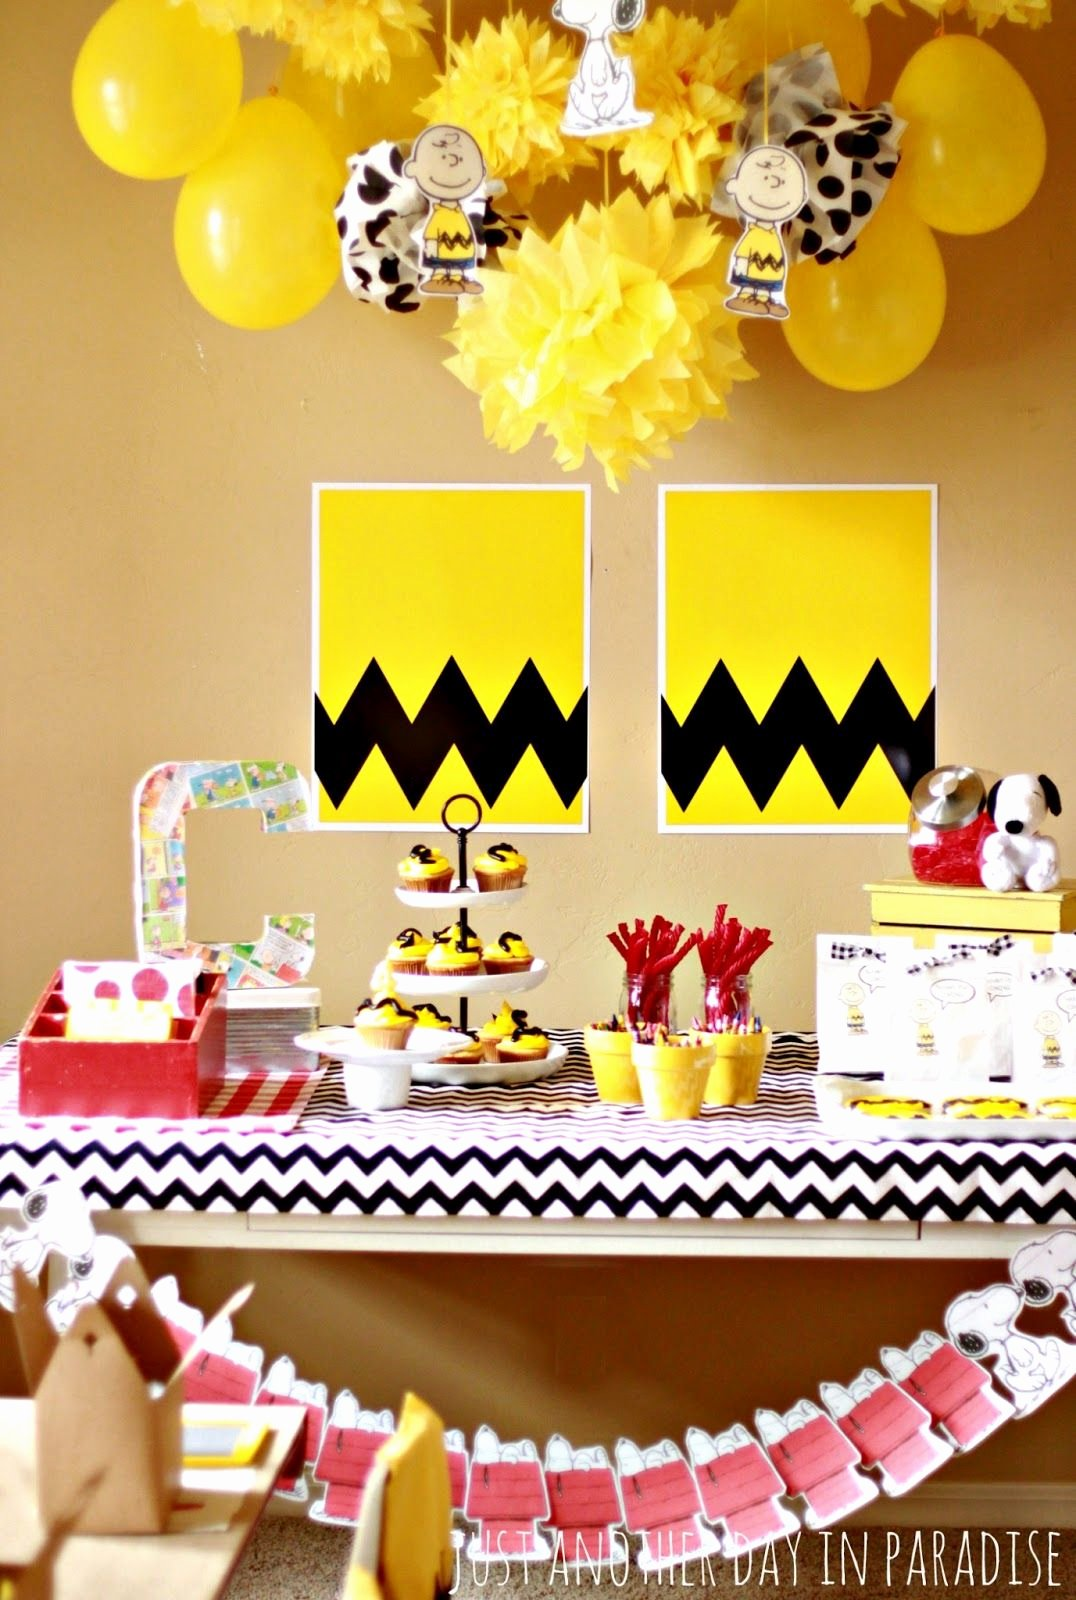 Snoopy Birthday Decoration Ideas Unique Just Another Day In Paradise A Charlie Brown Birthday Party